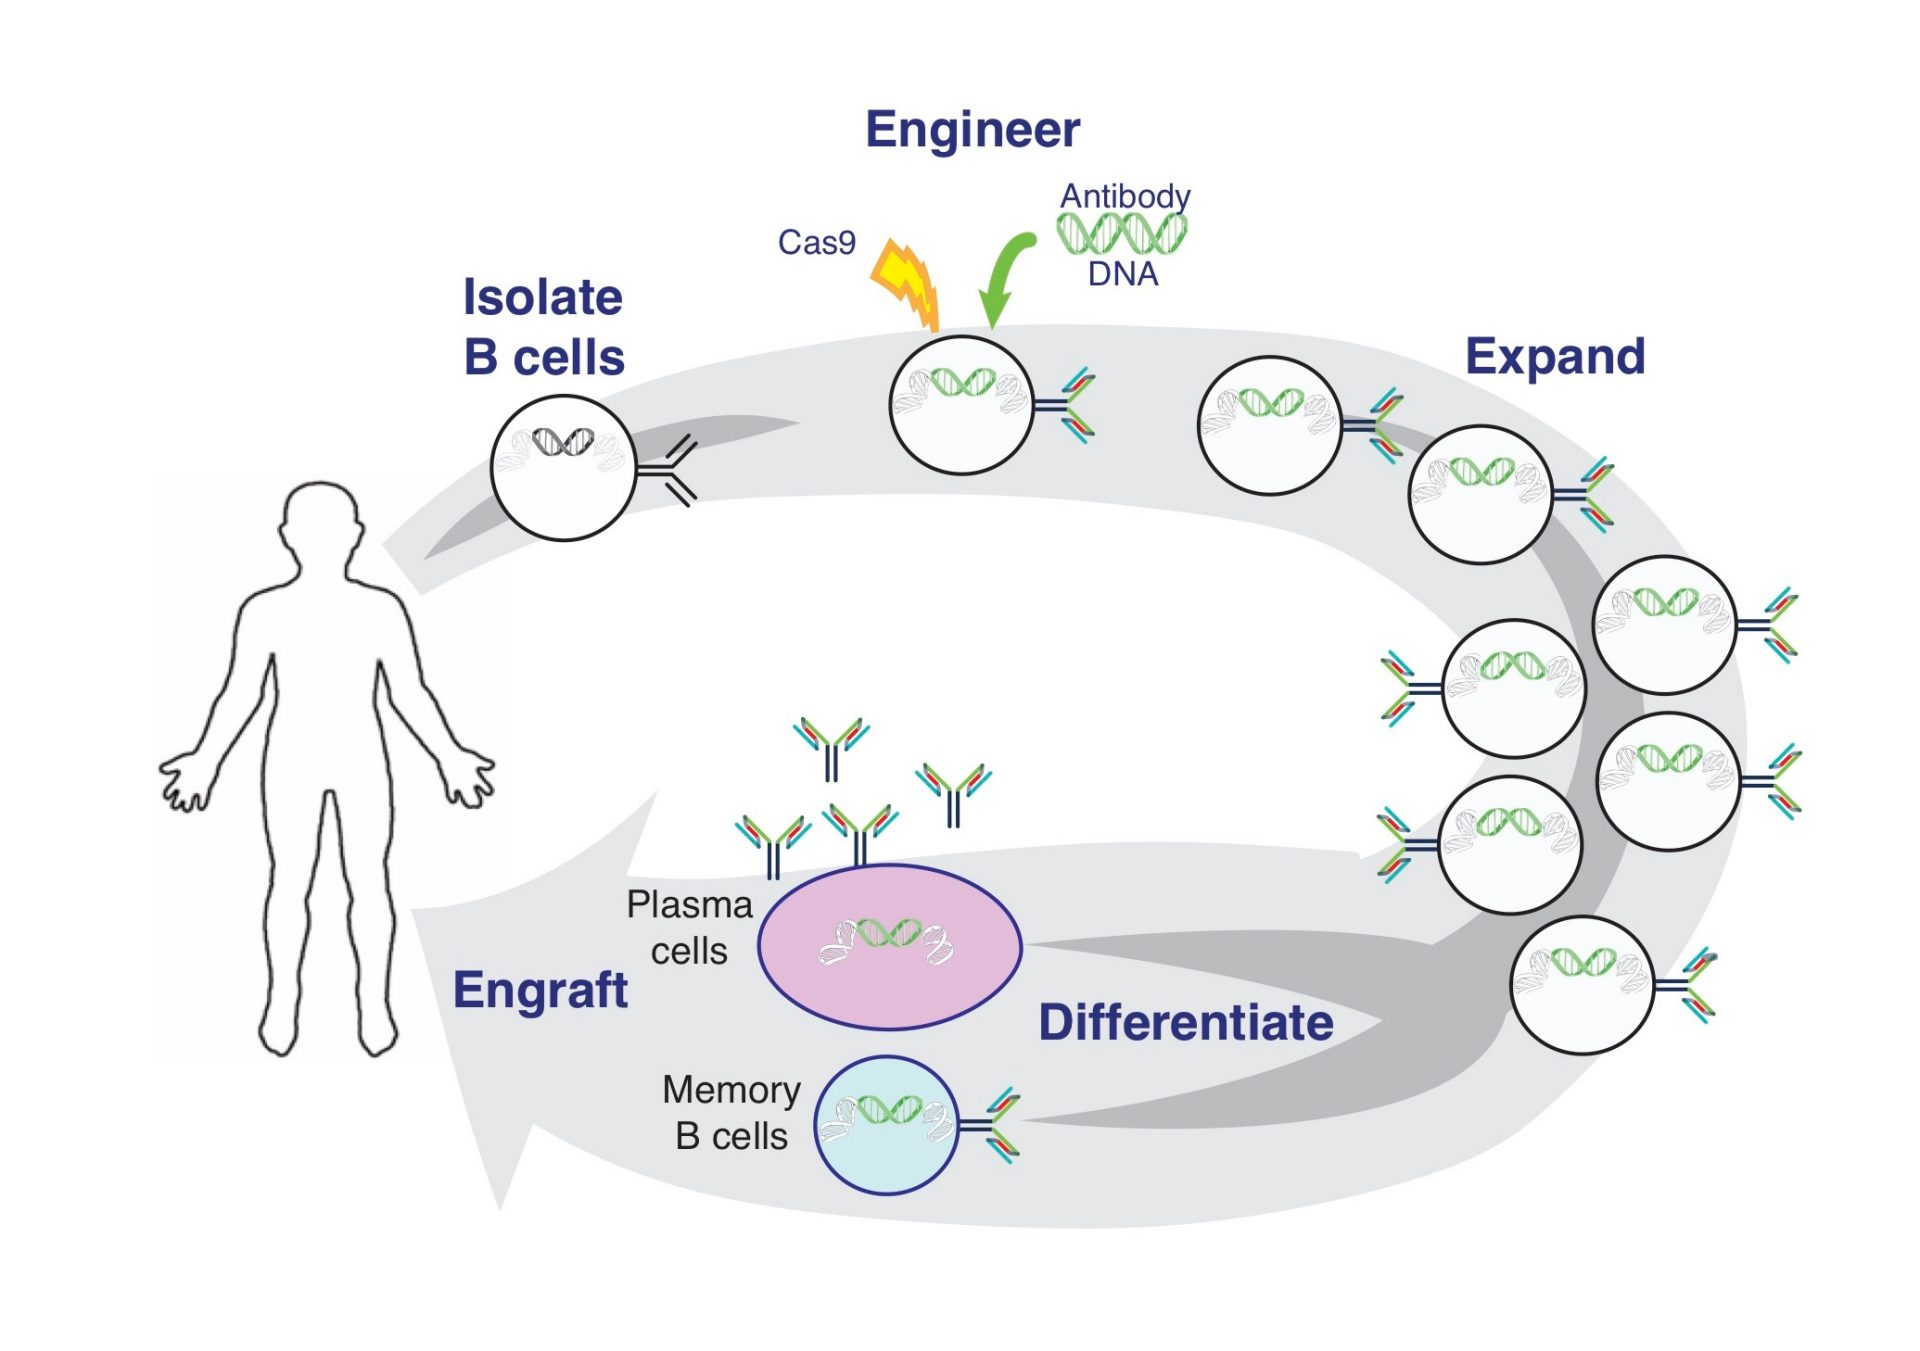 Overview of B cell editing and engraftment process.